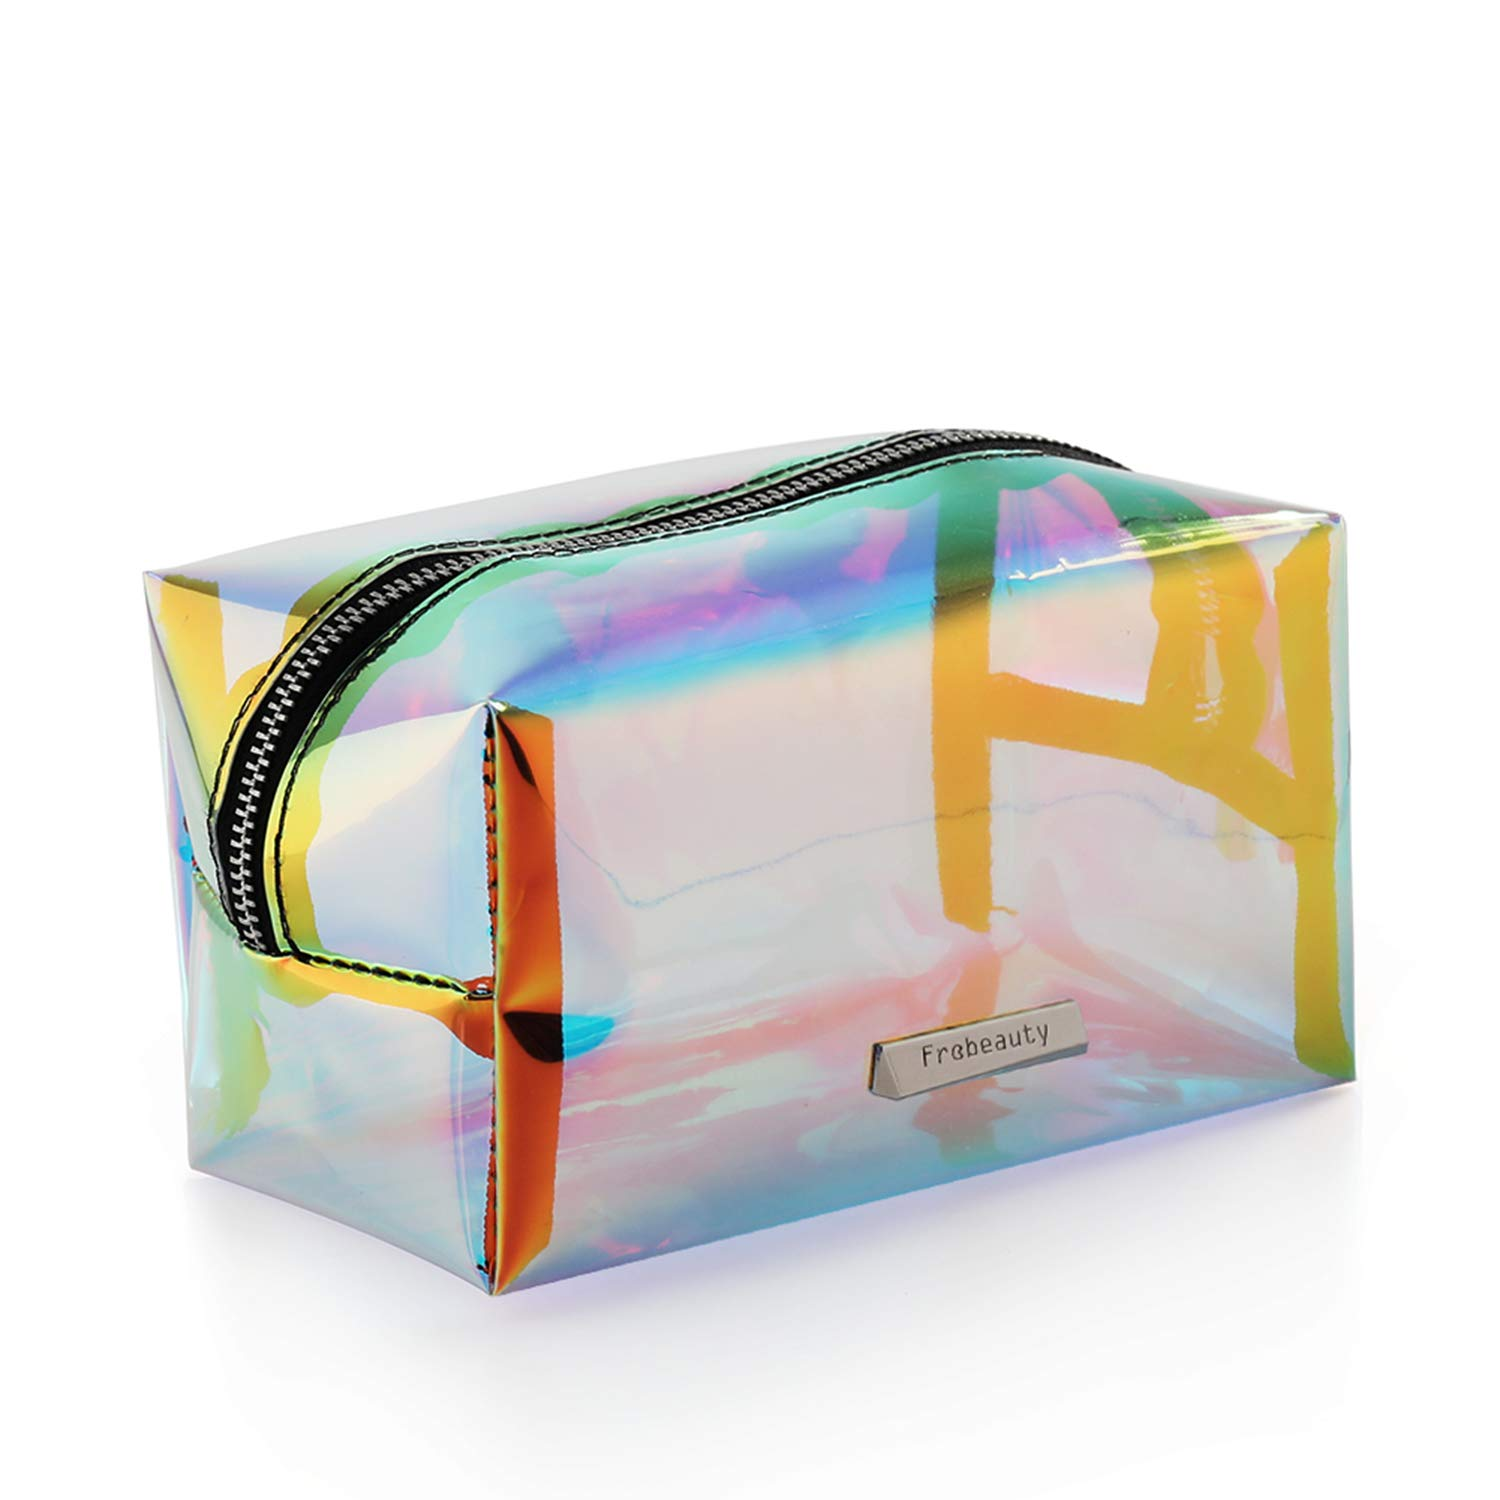 Holographic Makeup Bag Iridescent Cosmetic Bag Hologram Clutch Large Toiletries Pouch Holographic Handy Makeup Pouch Wristlets Organizer Women Evening Bag Frebeauty